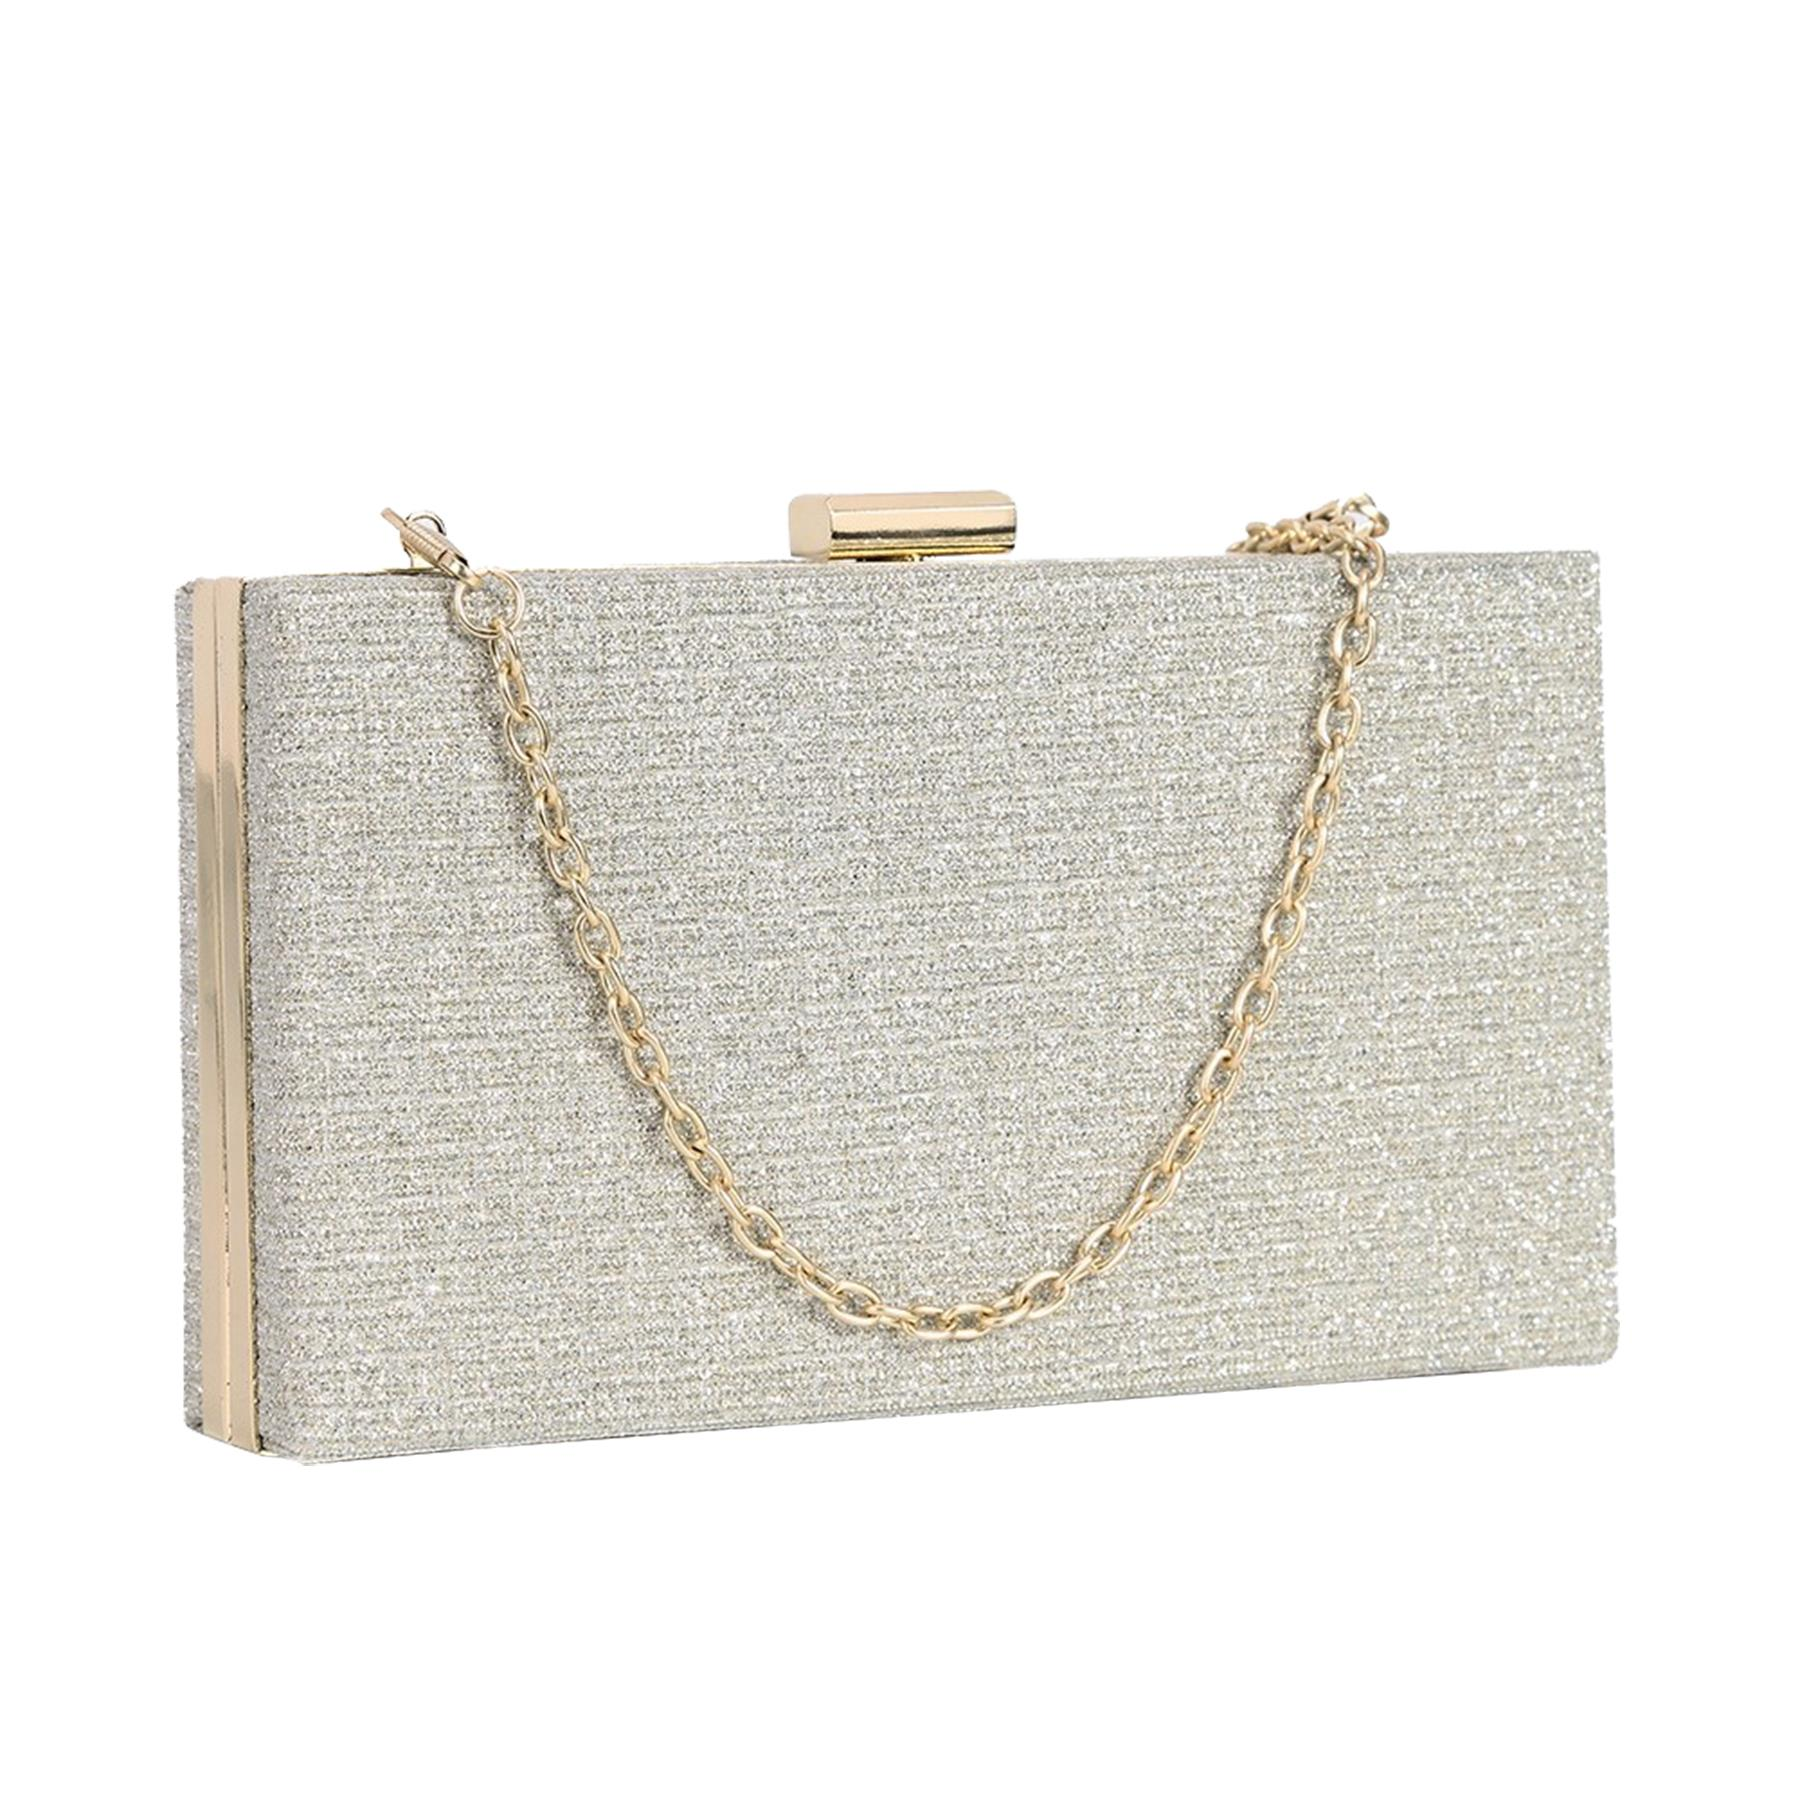 New-Sparkly-Shimmer-Glitter-Chain-Ladies-Hard-Compact-Bridal-Clutch-Bag-Purse thumbnail 6